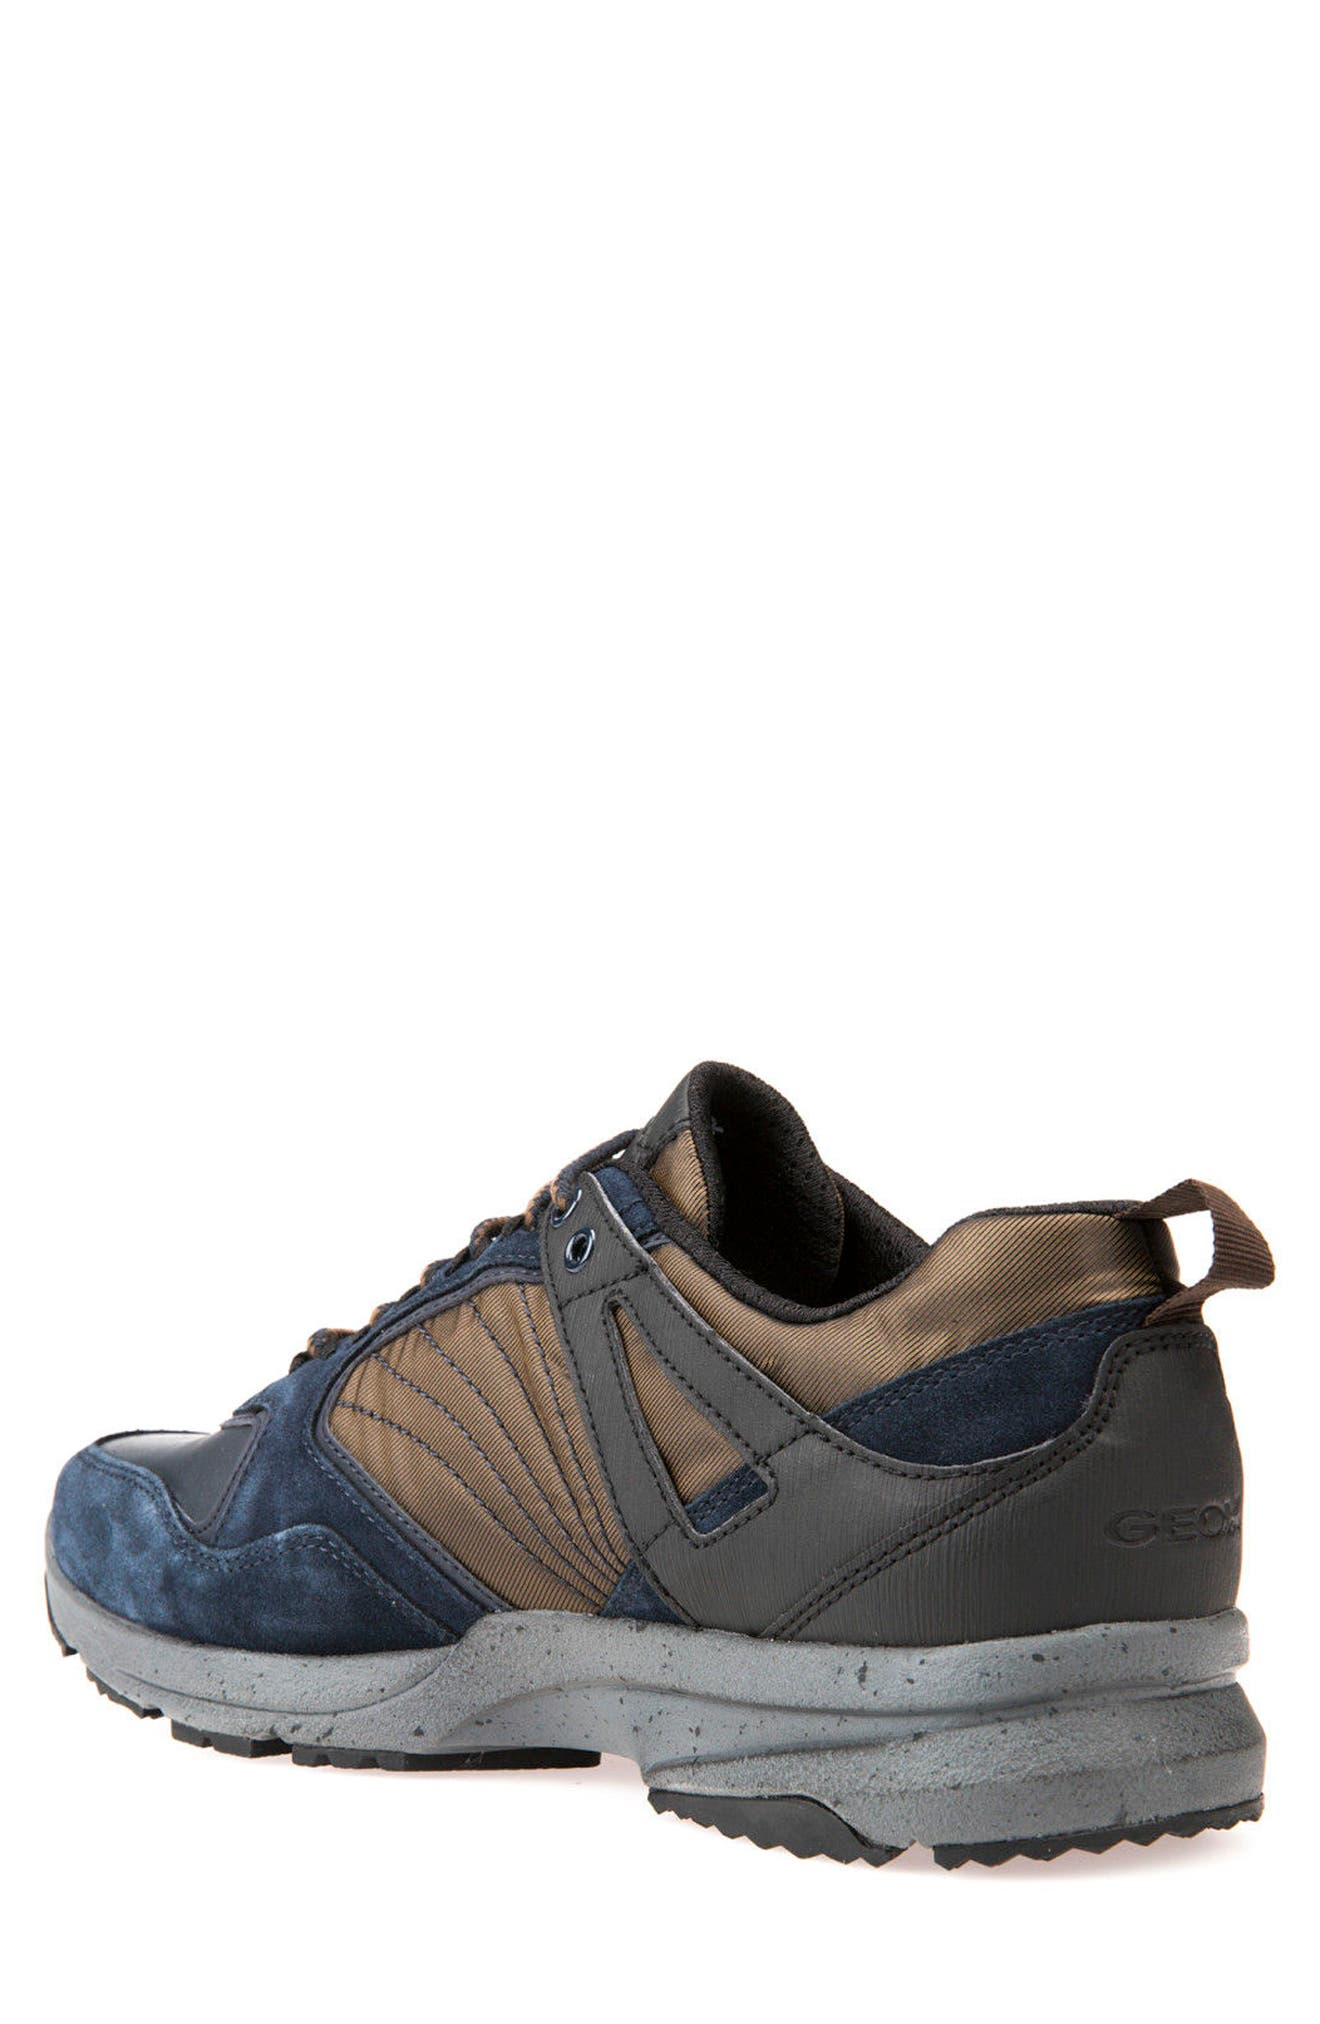 Gegy ABX Waterproof Sneaker,                             Alternate thumbnail 2, color,                             Navy/ Musk